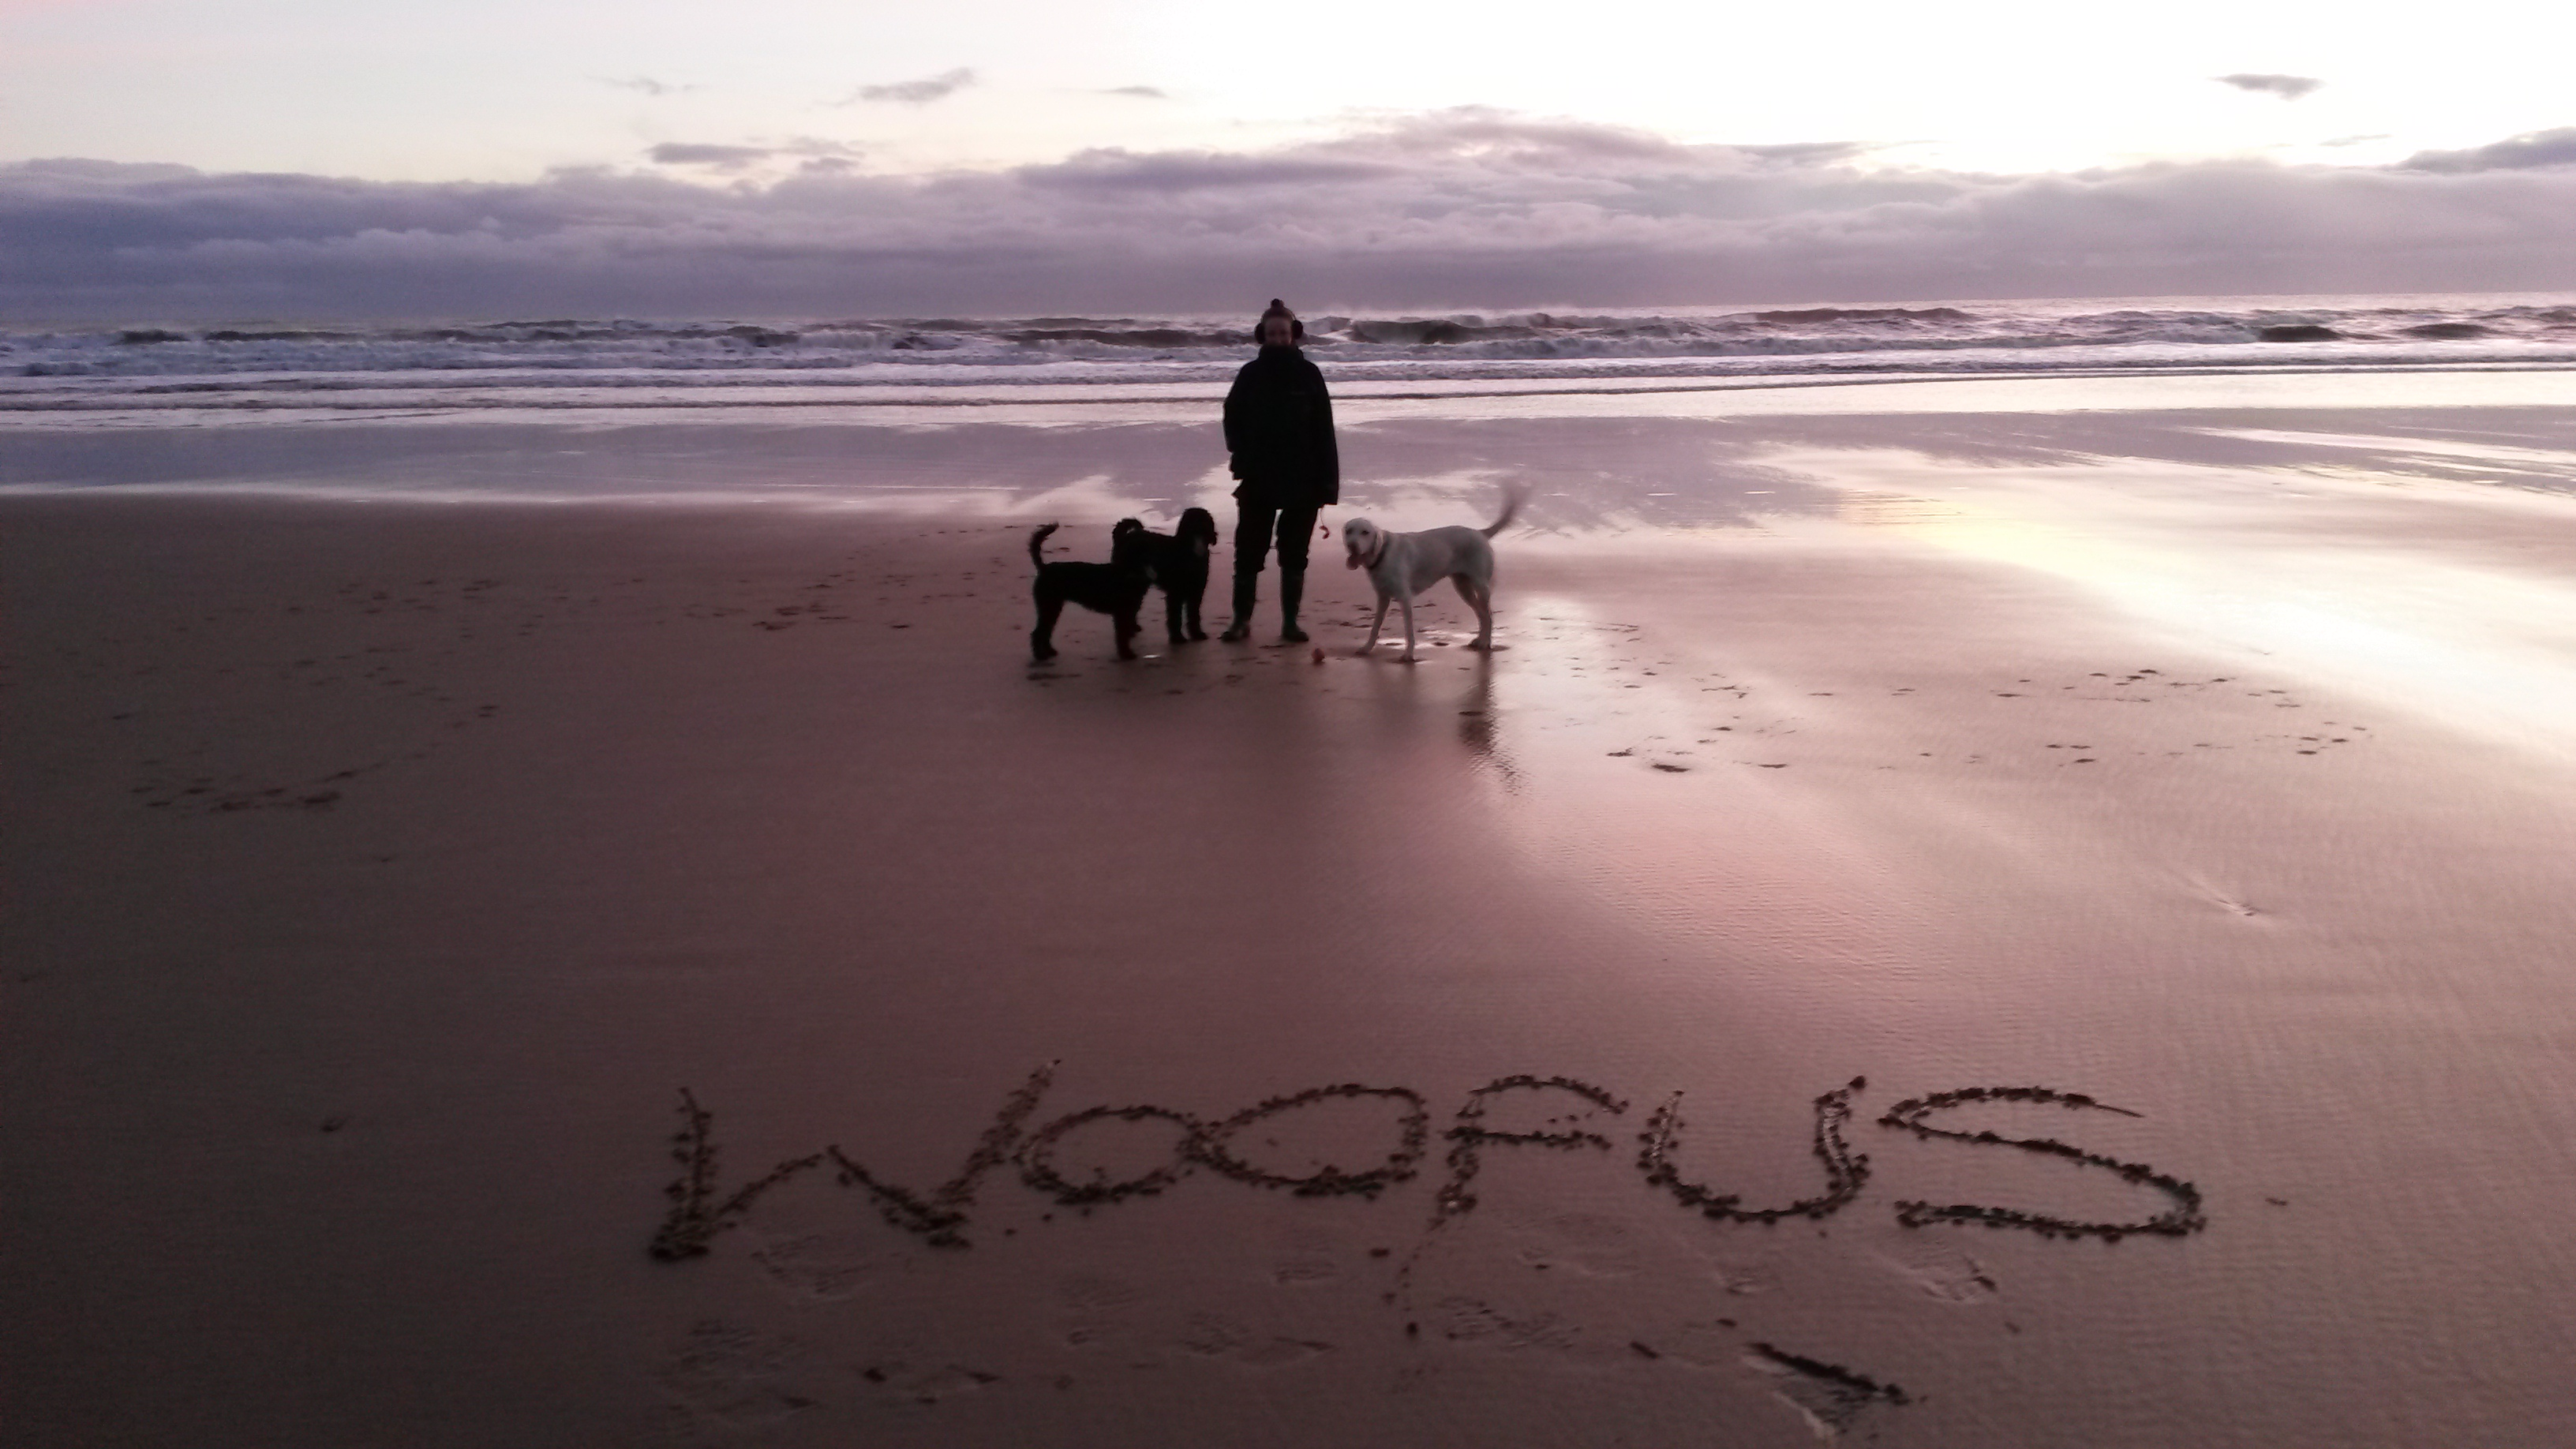 Woofus Dog Walking North Shields Woofus Dog Walking Tynemouth Woofus Dog Walking Cullercoats Woofus Dog Walking Whitley Bay Woofus Dog Walker North Shields Woofus Dog Walker Tynemouth Woofus Dog Walker Cullercoats Woofus Dog Walker Whitley Bay  Woofus Dog Walker Tynemouth, North Shields, Cullercoats, Whitley Bay Woofus Dog Walking Tynemouth, North Shields, Cullercoats, Whitley Bay Woofus Dog Boarding Tynemouth, North Shields, Cullercoats, Whitley Bay